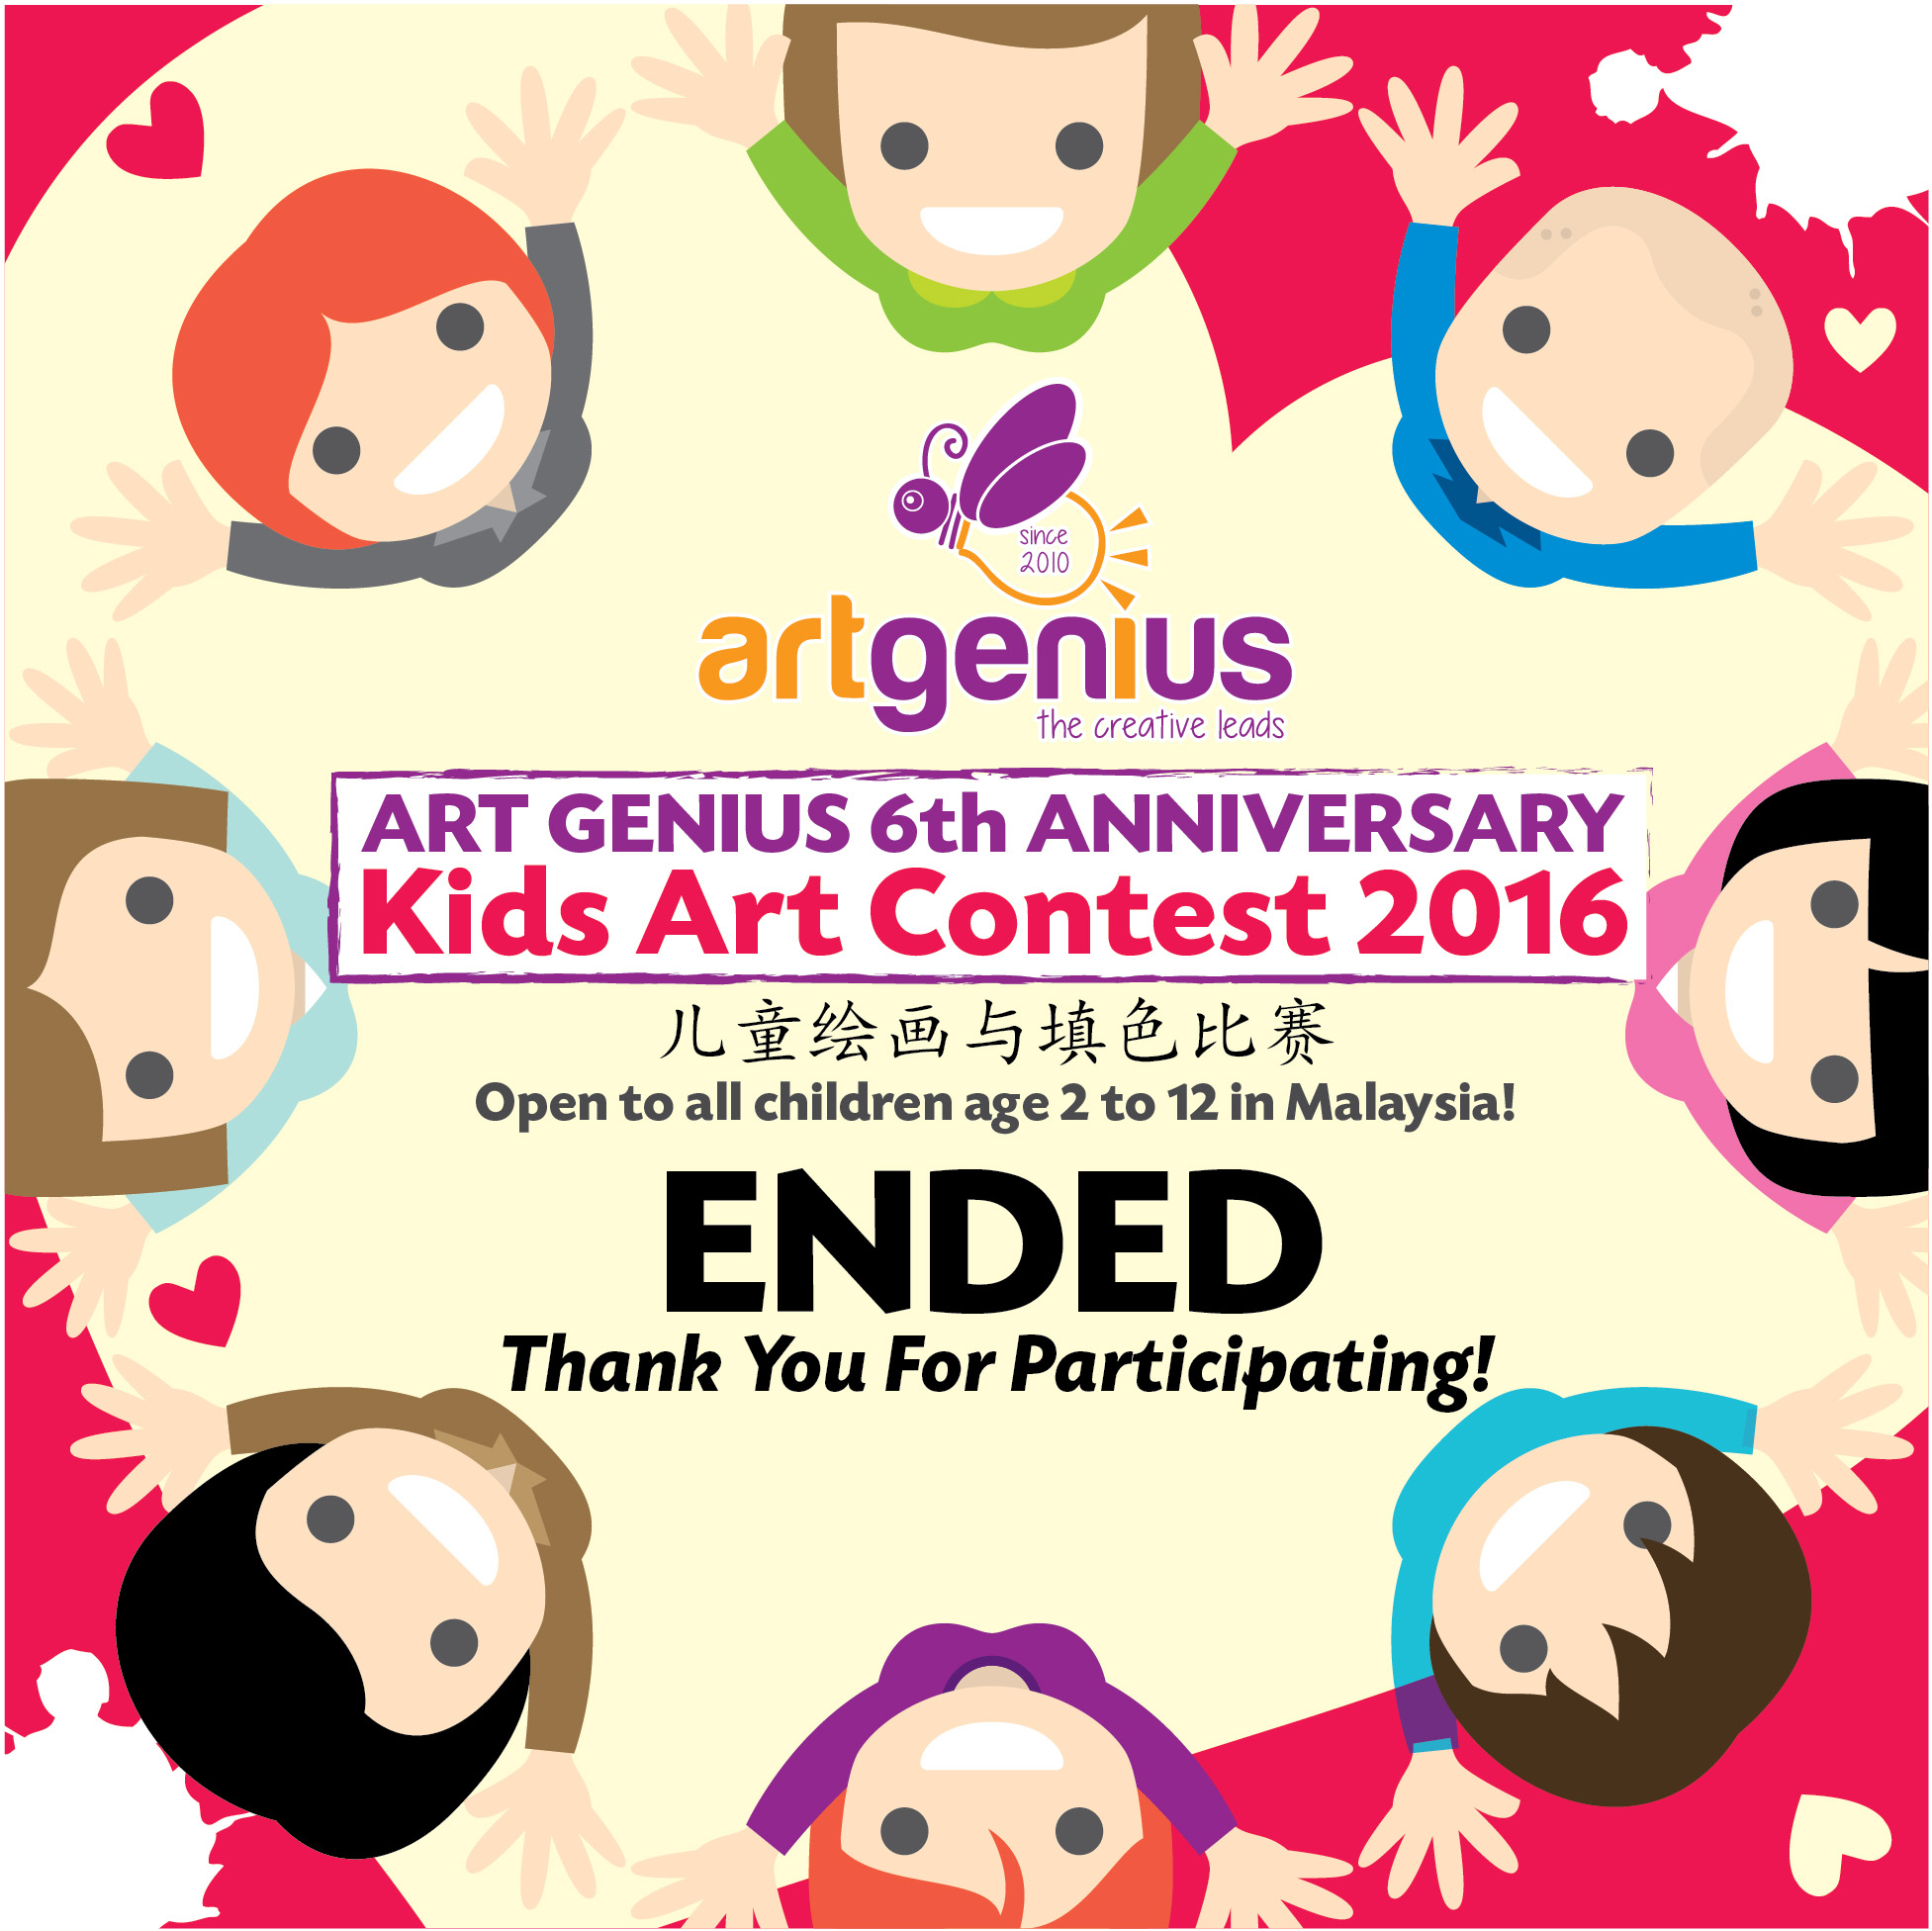 Art Genius 6th Anniversary Kids Art Contest 2016